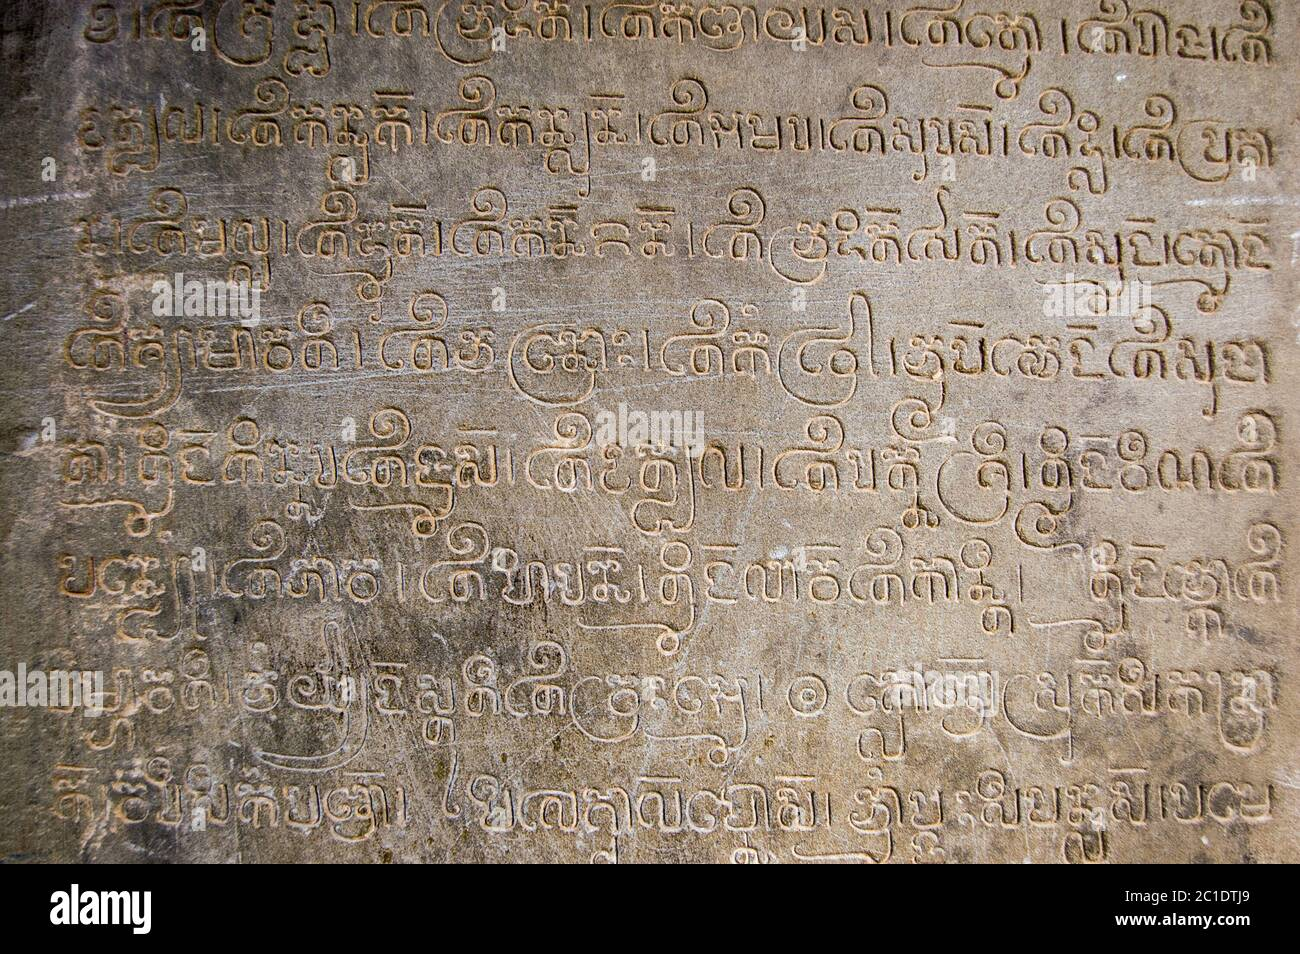 Sanskrit religious inscriptions on the entrance to a prasat of Lolei Temple, part of the Rolous complex at Angkor, Siem Reap, Cambodia. Carved in the Stock Photo